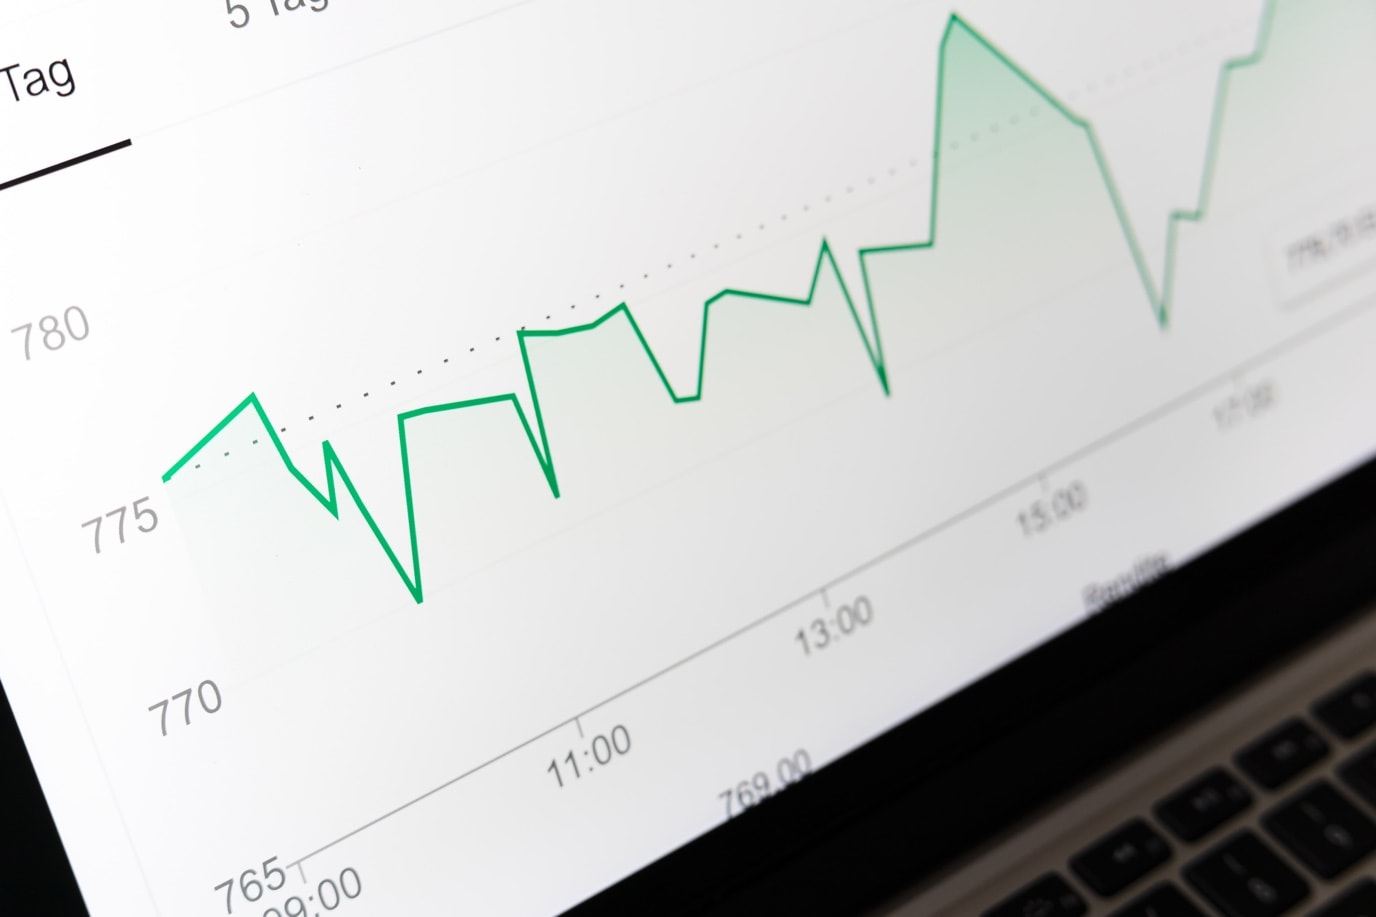 LinkedIn Reporting Template shows chart and data